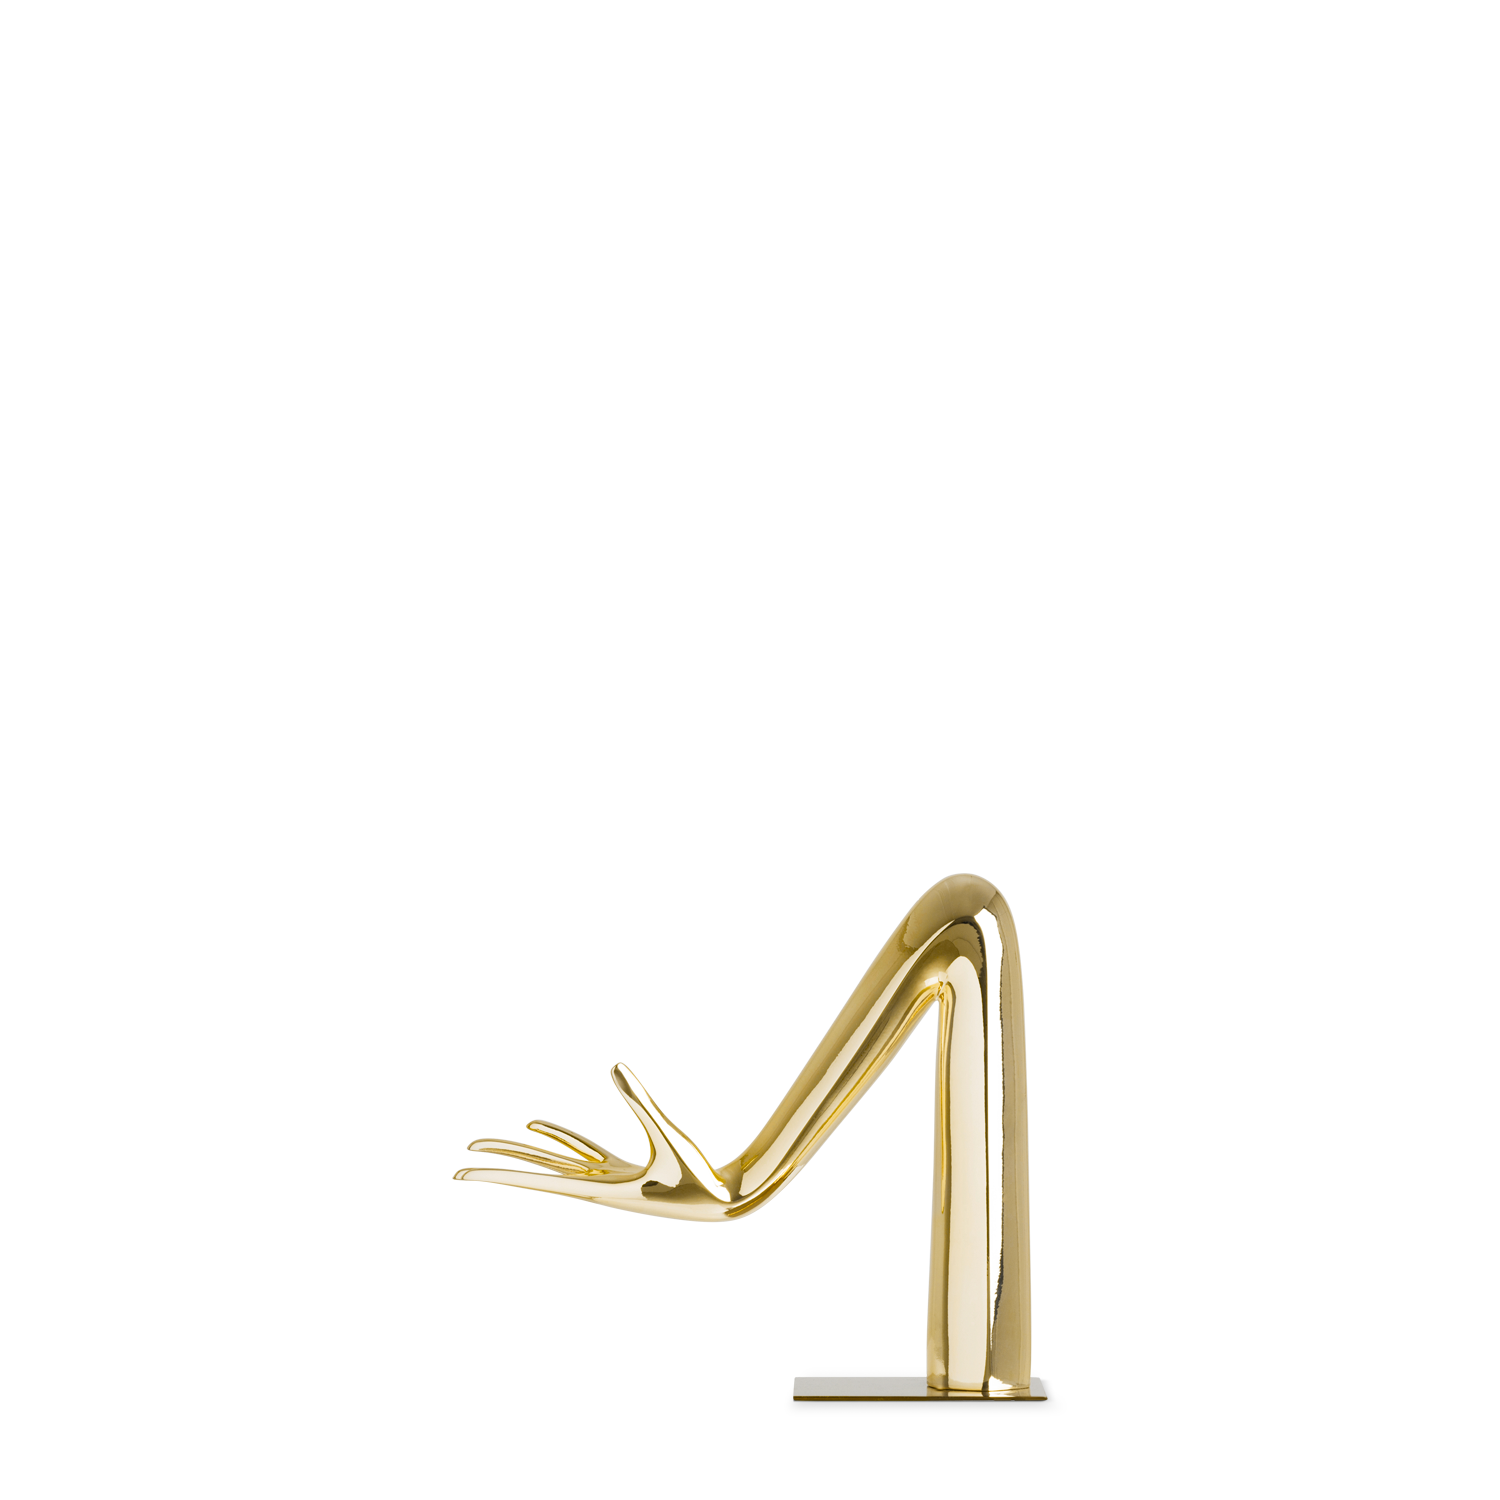 ACC-HAND03/gold